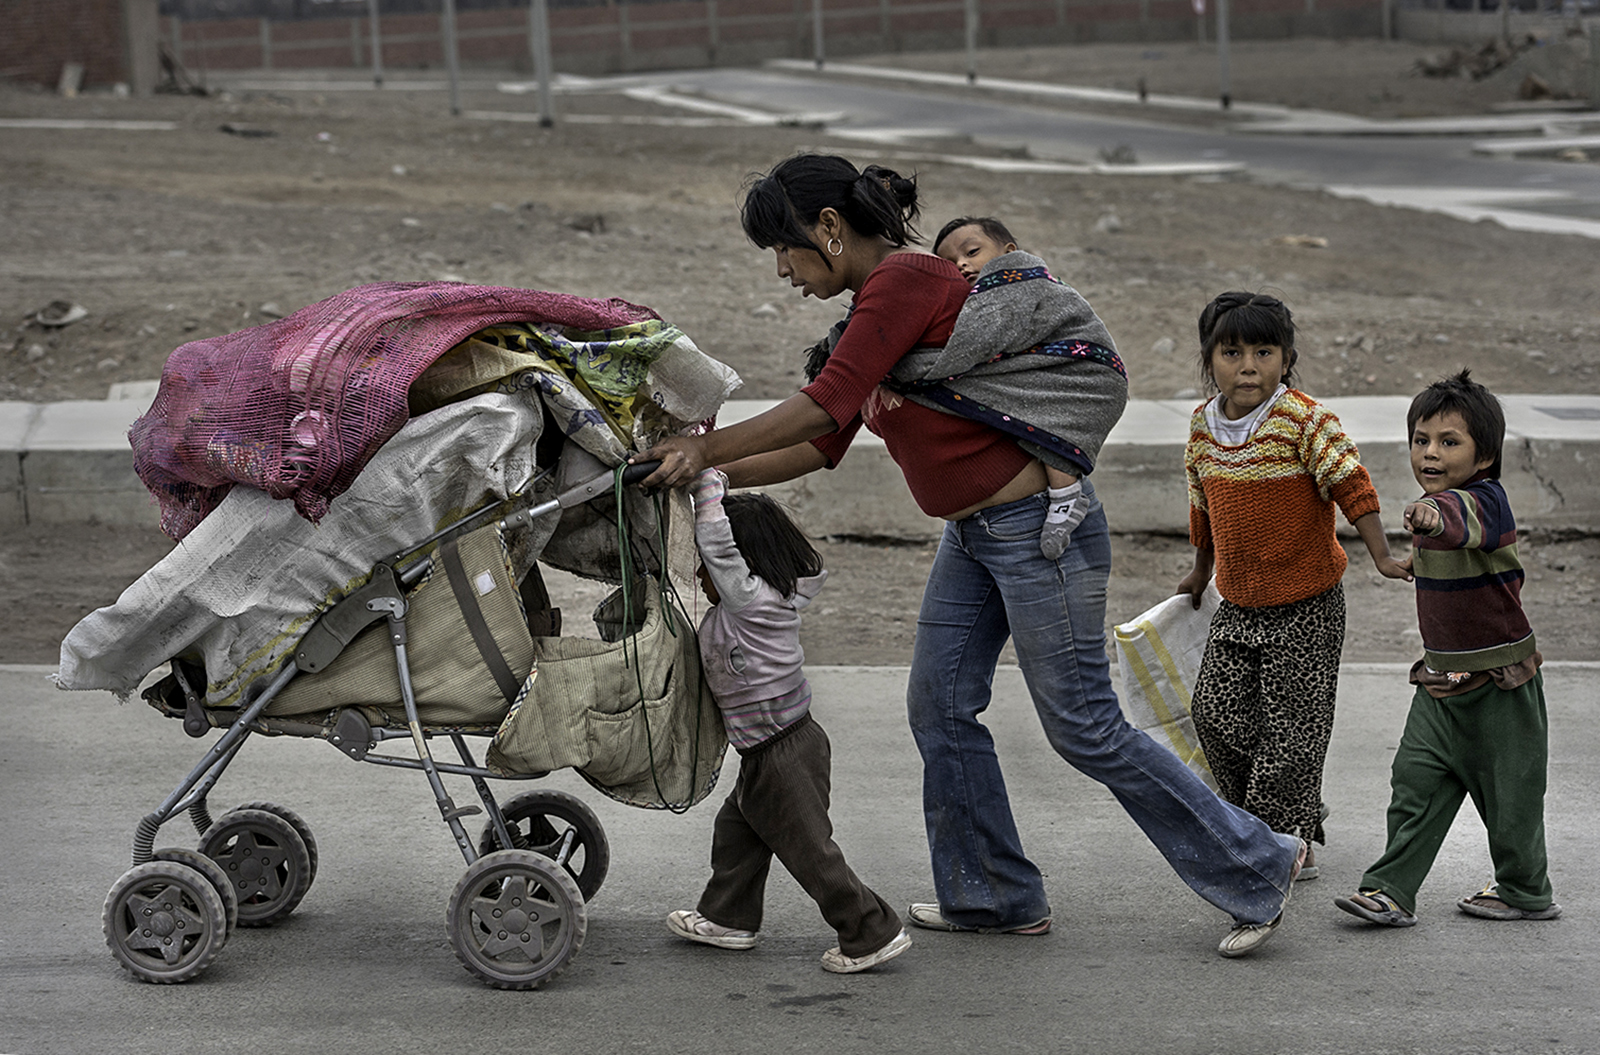 A victim of Domestic violence Erika Gonzales, 36, forms a train like procession as she walks with three of her children as well as her grandchild fastened to her back through the streets of Lima, Peru, collecting recyclables. In Lima, 20 percent of all its waste is gathered up in this manner. Her children are needed to help her and do not attend school.The family lives in a room with no running water or bathroom on the verge of eviction.©  Renée C. Byer